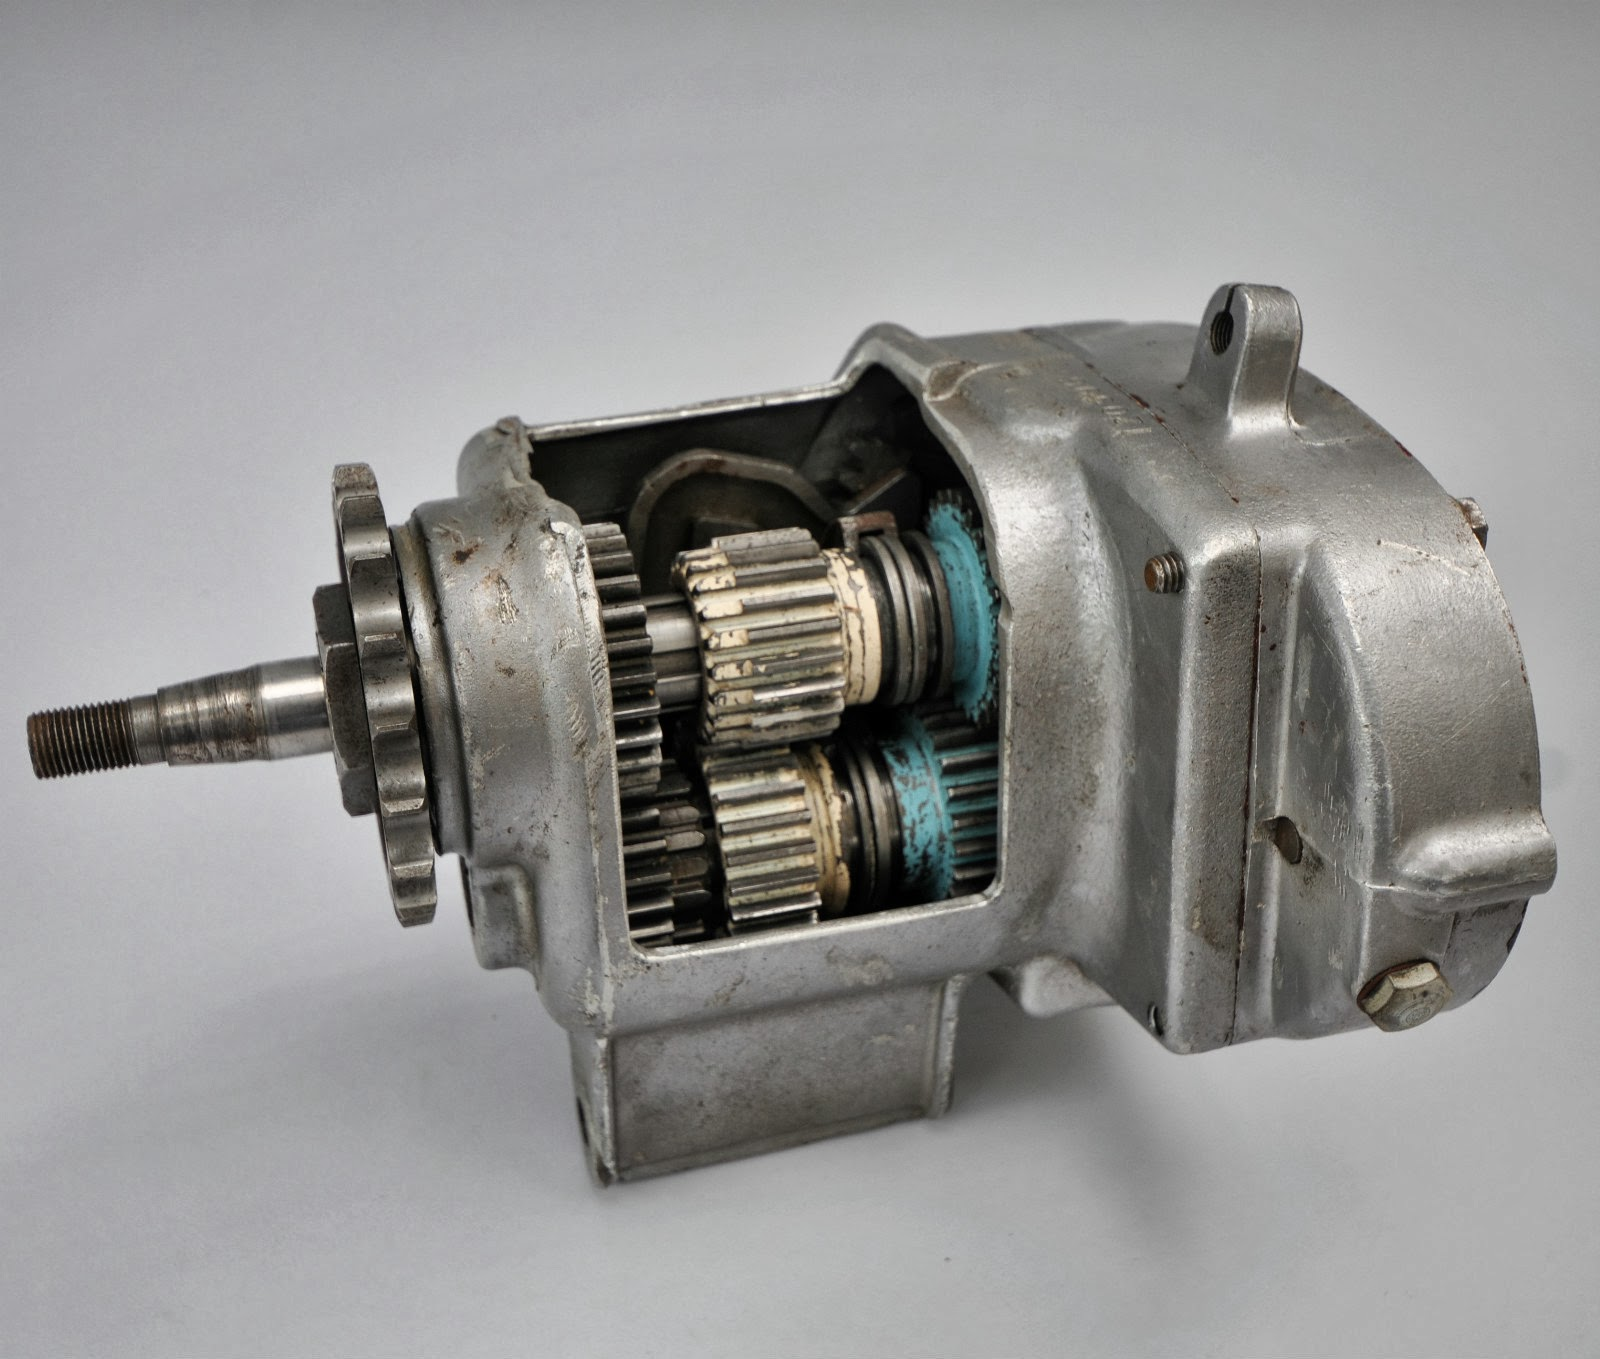 Geekbobber Triumph Cutaway Gearbox Used For Instruction At Johnson Gear Box Of Motorcycle Sometimes I Feel Like Im Developing An Unhealthy Interest In Memorabilia One More Reason Limited Money May Not Always Be A Liability